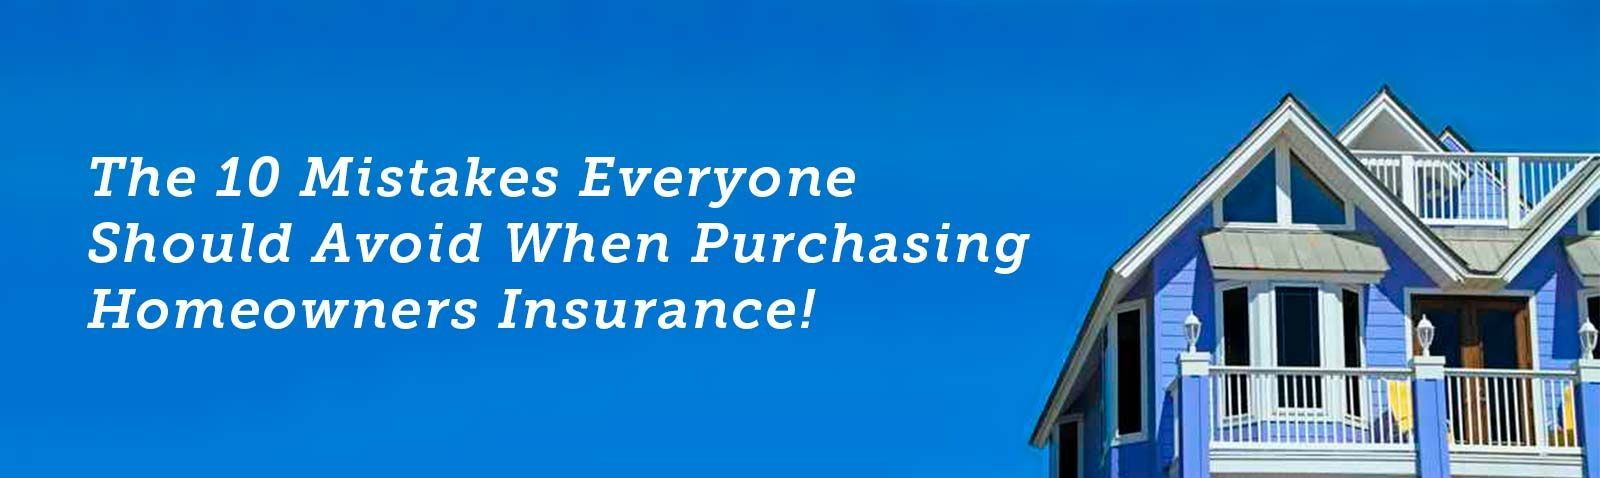 Purchasing homeowners insurance in Florida can be